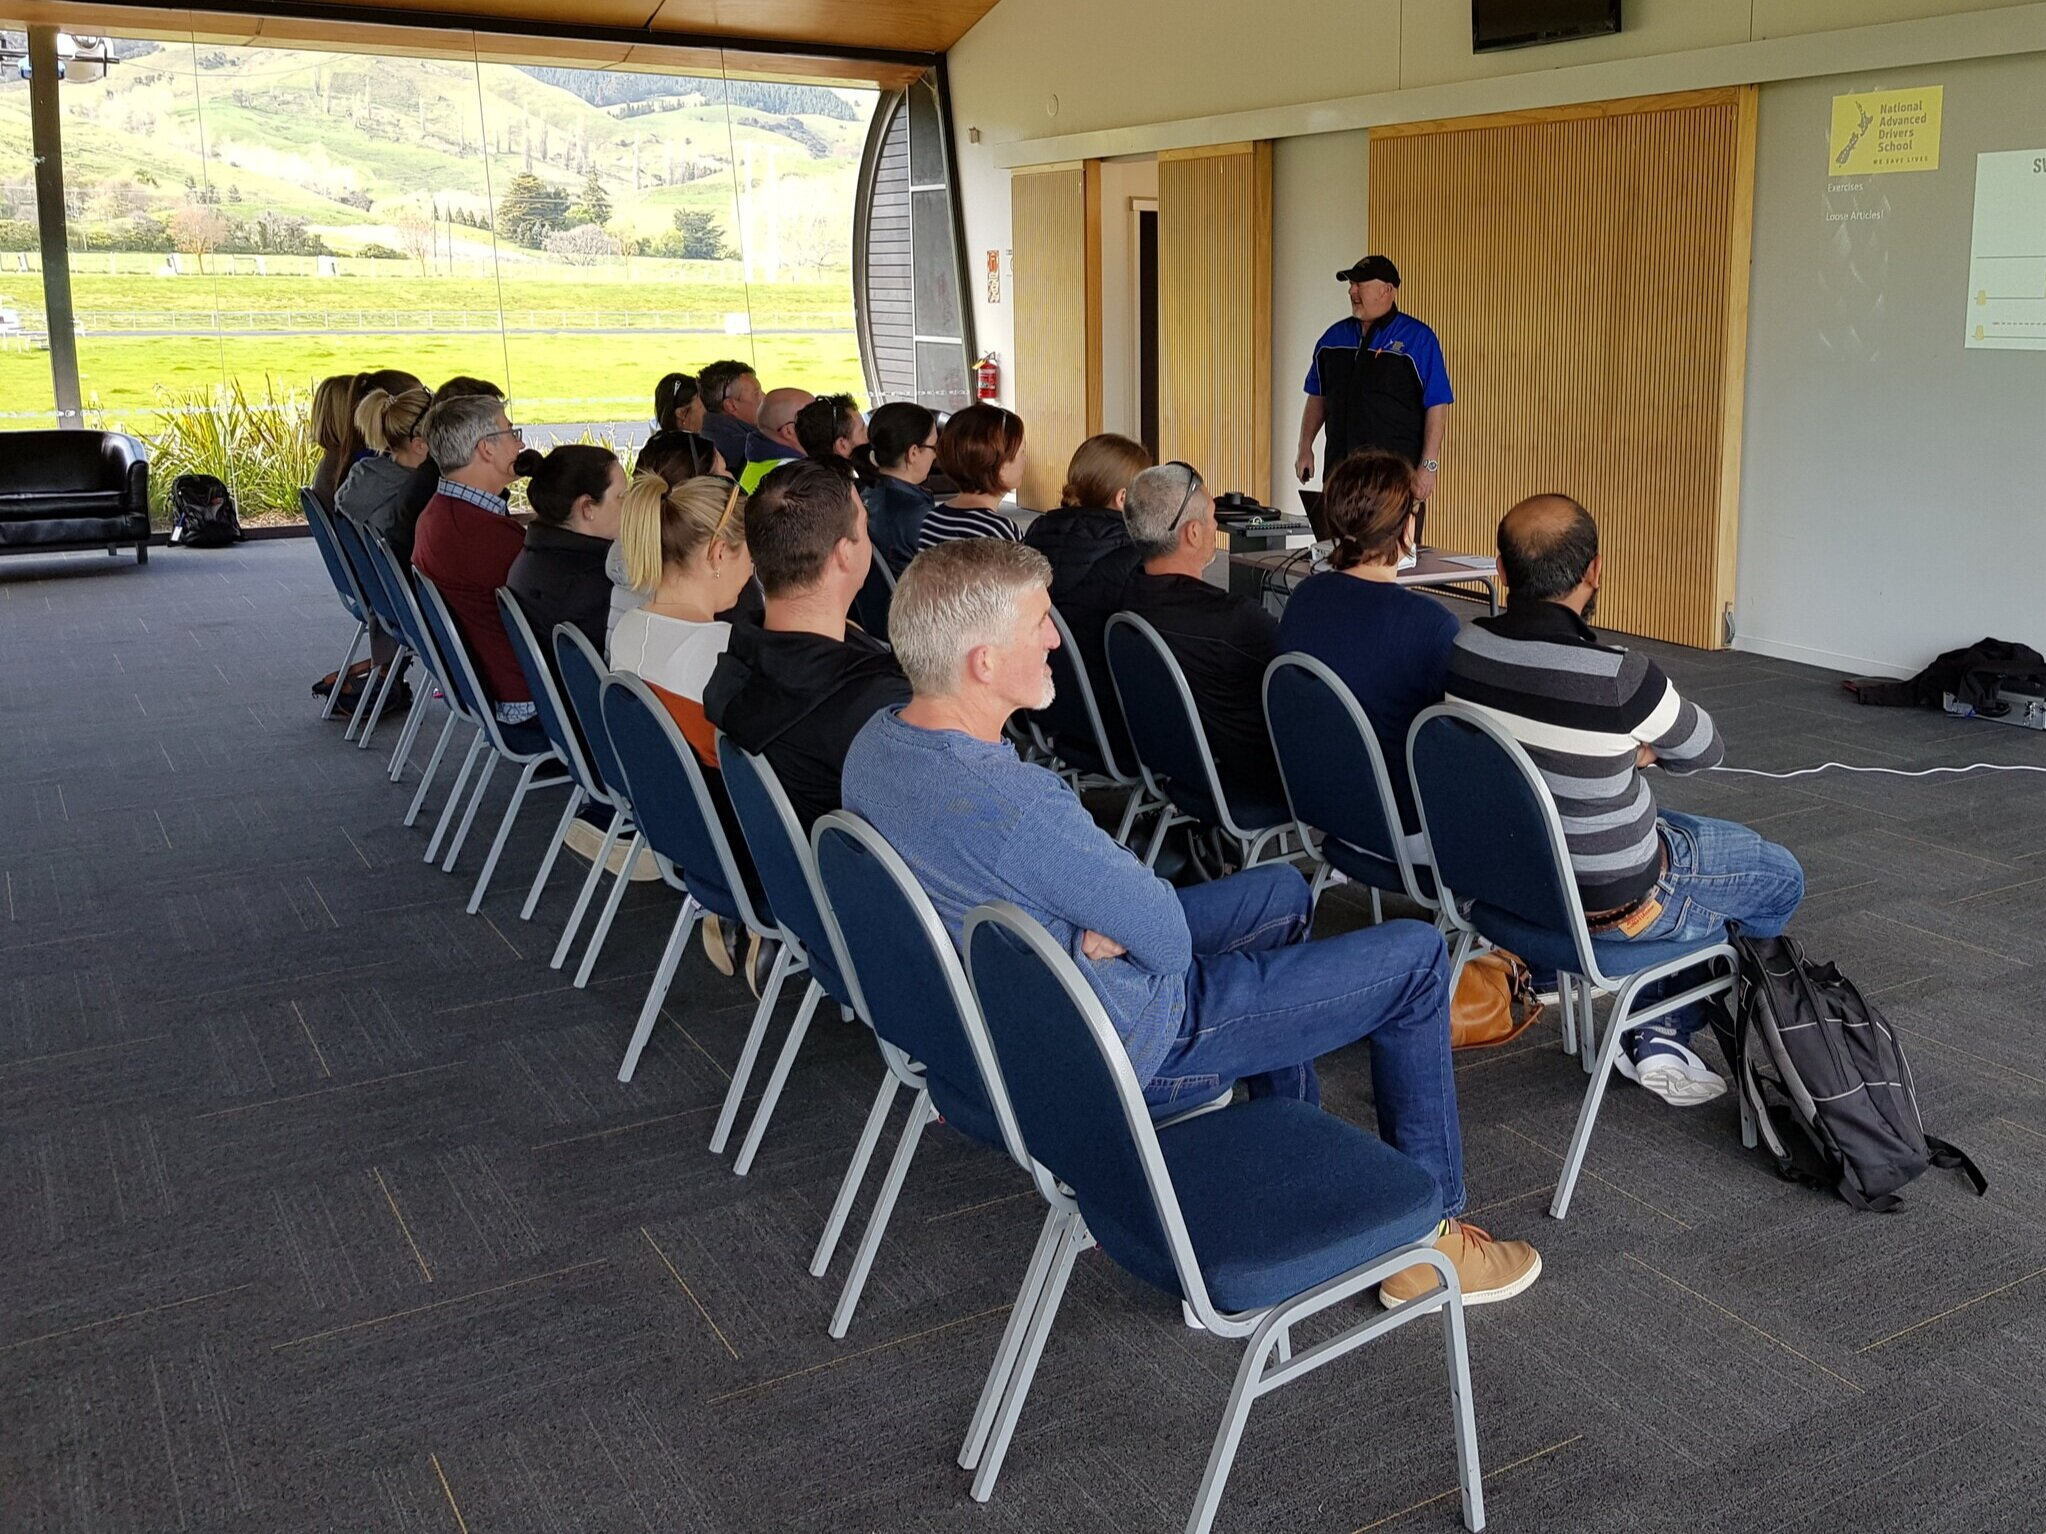 New Nelson Venue - The new Nelson venue is a city venue (previously training was at Motueka) where we plan to run courses twice a year (or more frequently if demand exists). The venue comfortably takes up to 20 participants in first class facilities and provides a safe and convenient location for local business in the Nelson Marlborough region. We offer Drive to Survive, Level 1 courses only at this venue.